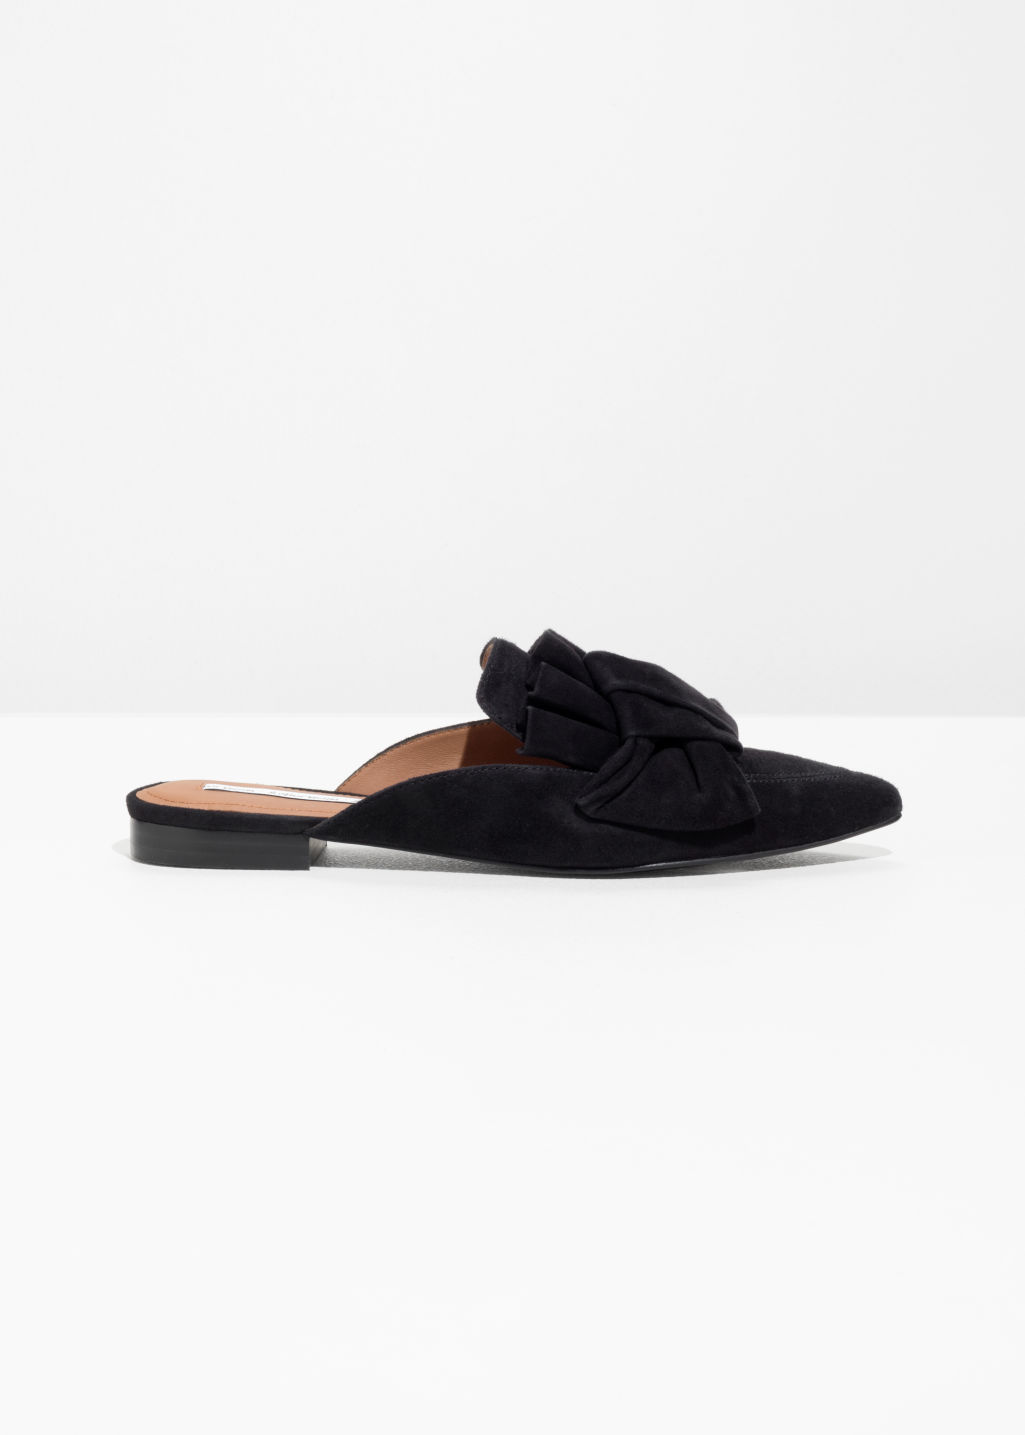 & OTHER STORIES Pleat Knot Suede Slip Ons